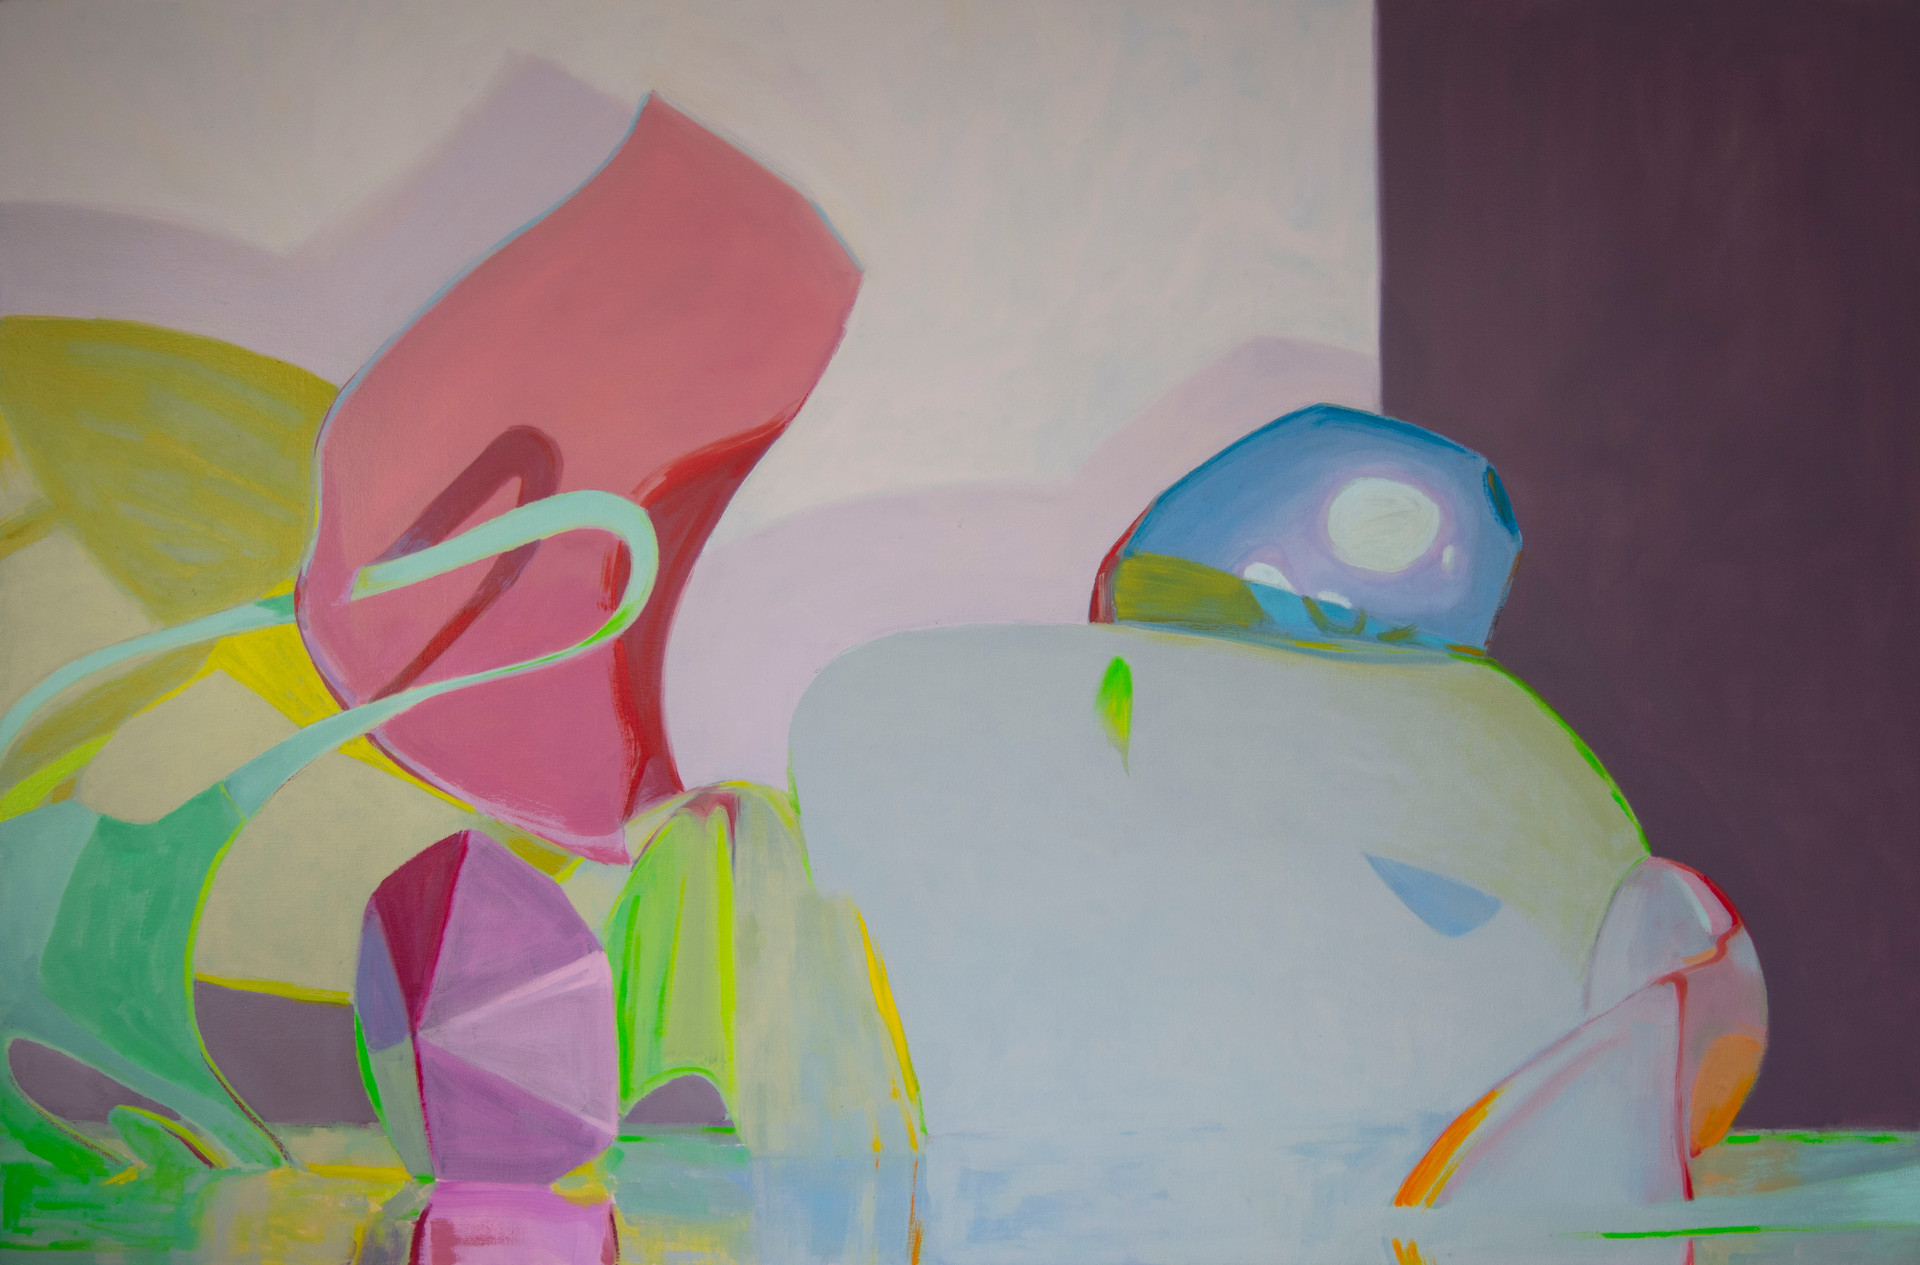 Ethereal Force, 2019, oil on canvas, 133 x 200 cm